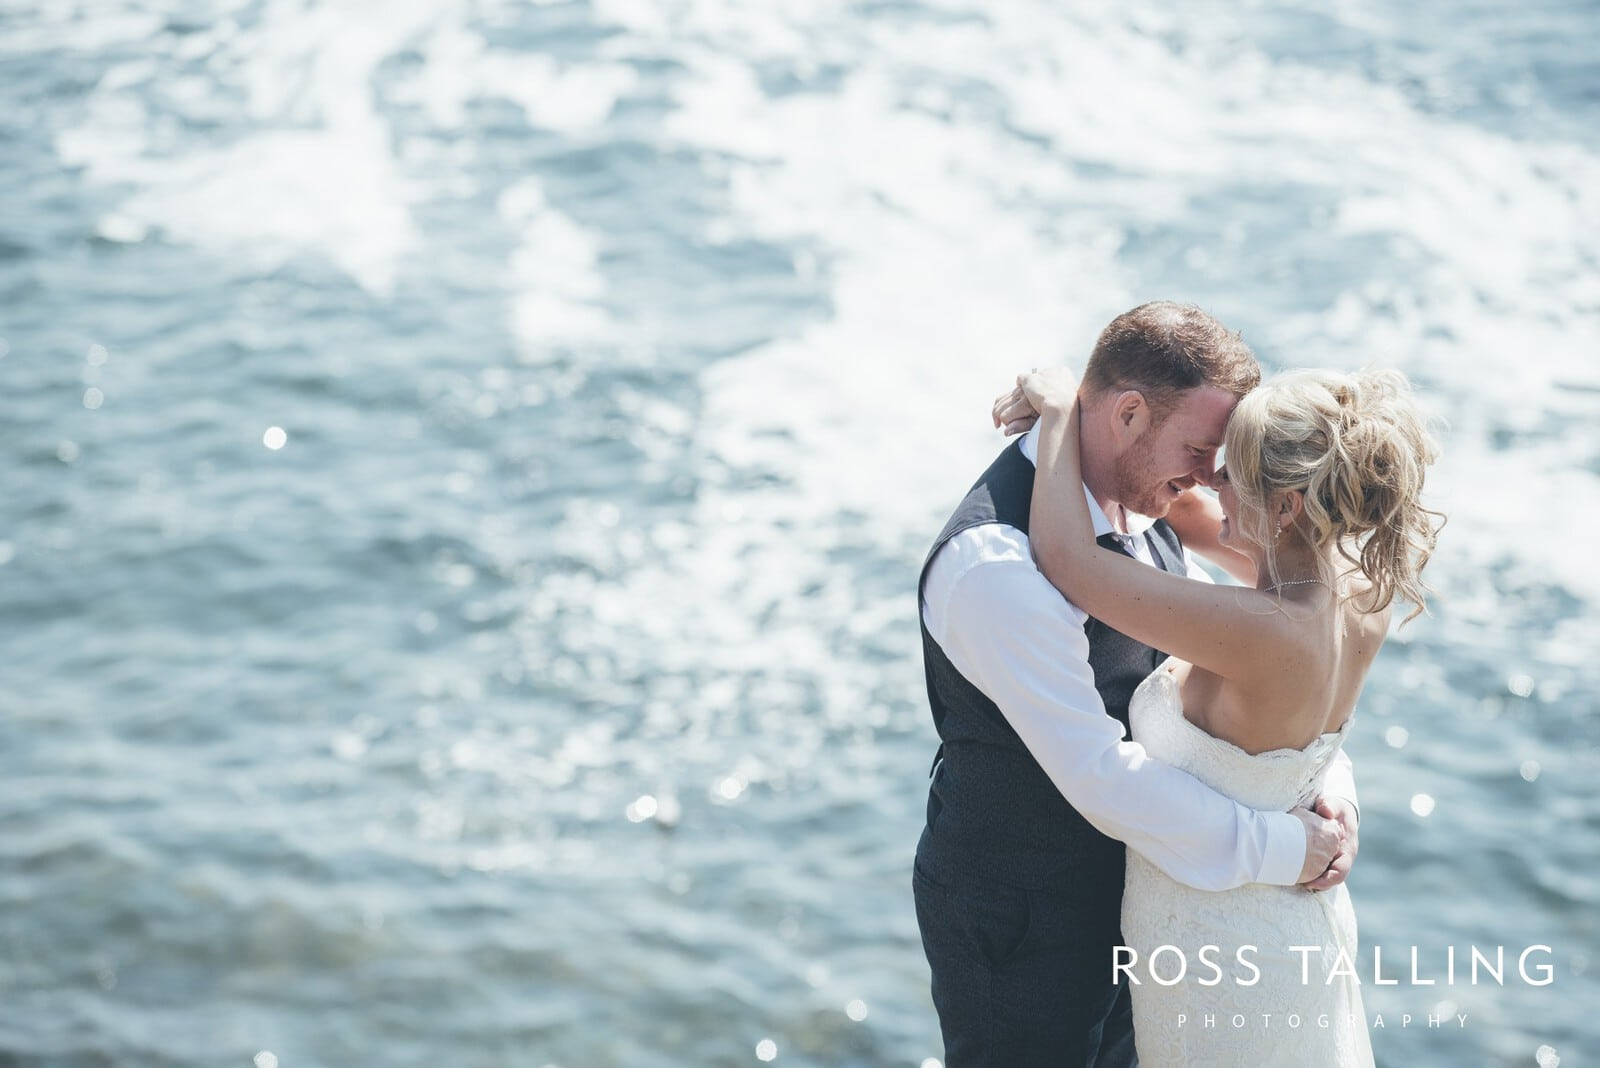 Boho Elopement Wedding Photography Cornwall - Stacey and Steve_0070